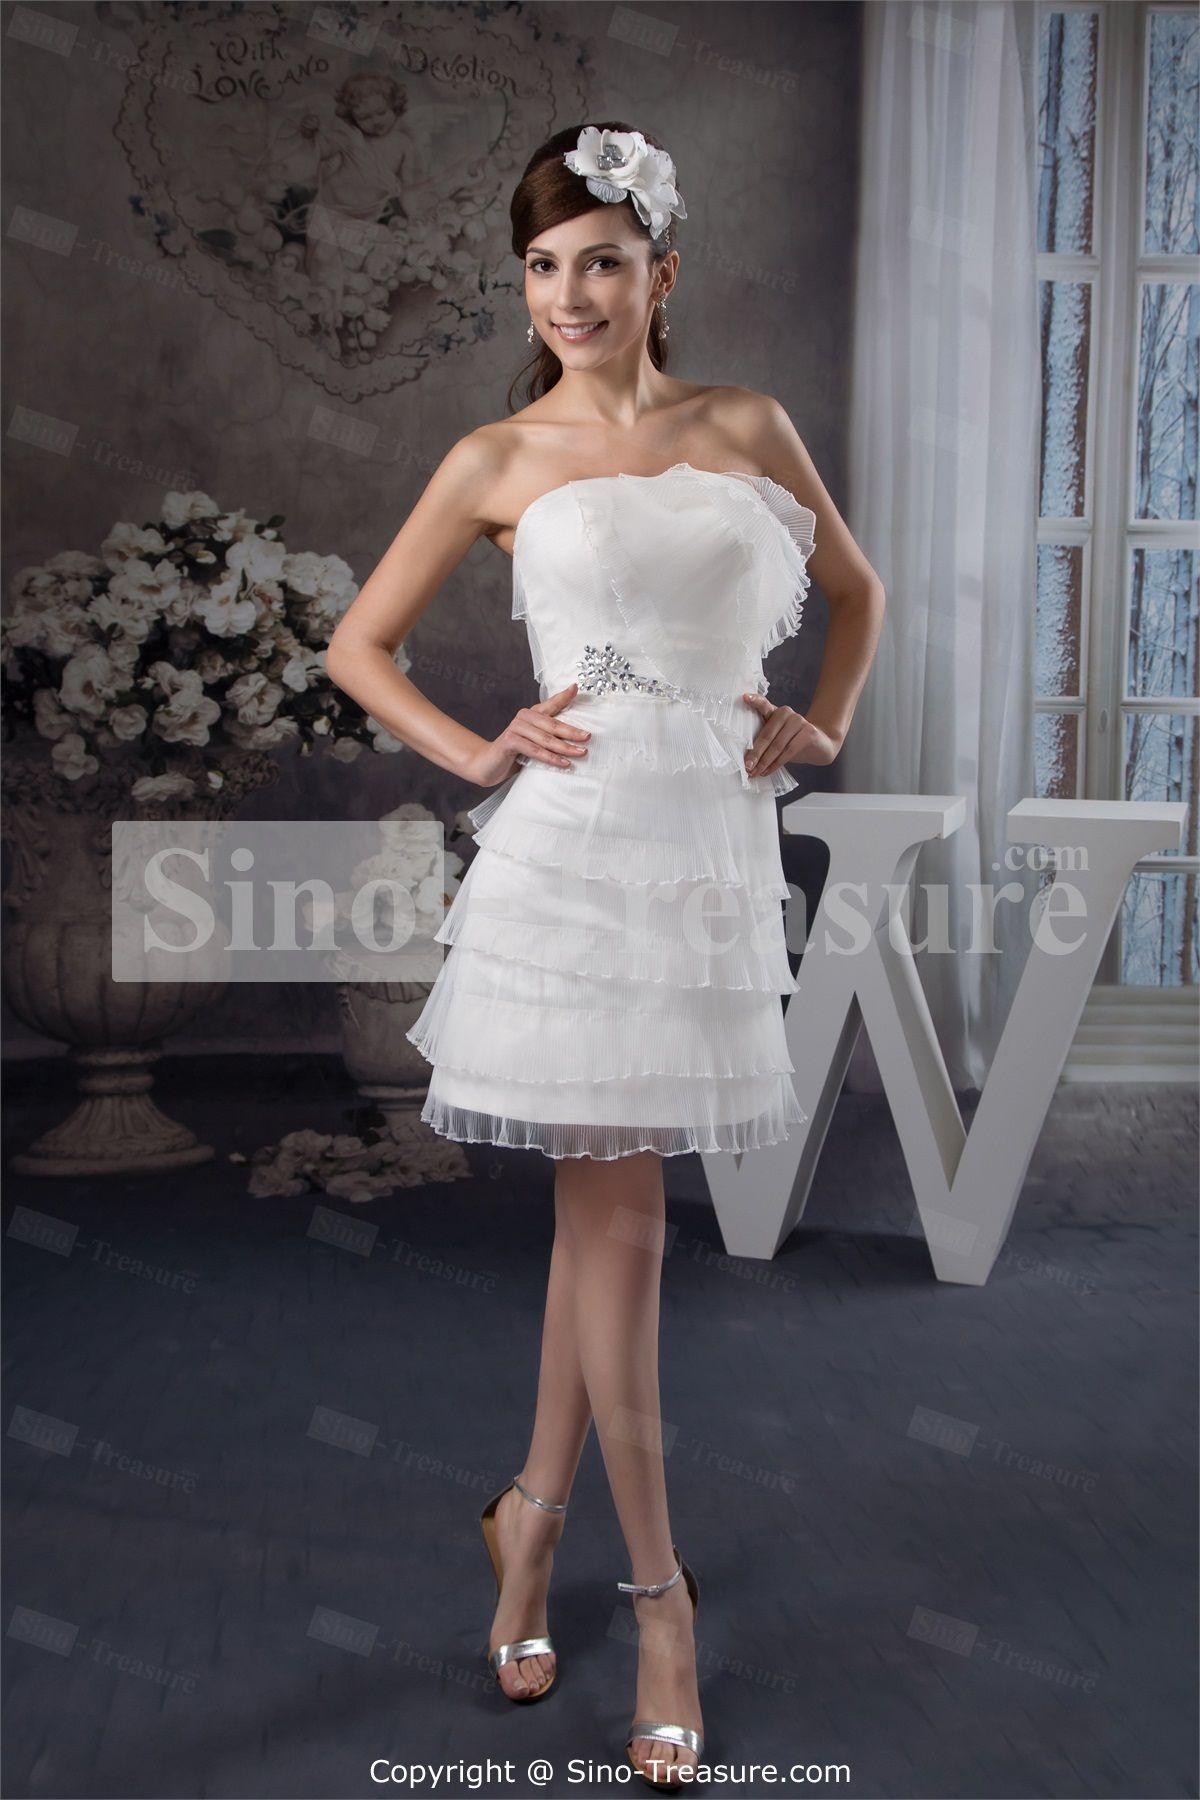 Mini white wedding dress  White ALine Short Mini Sleeveless Cocktail DressHomecoming Dress